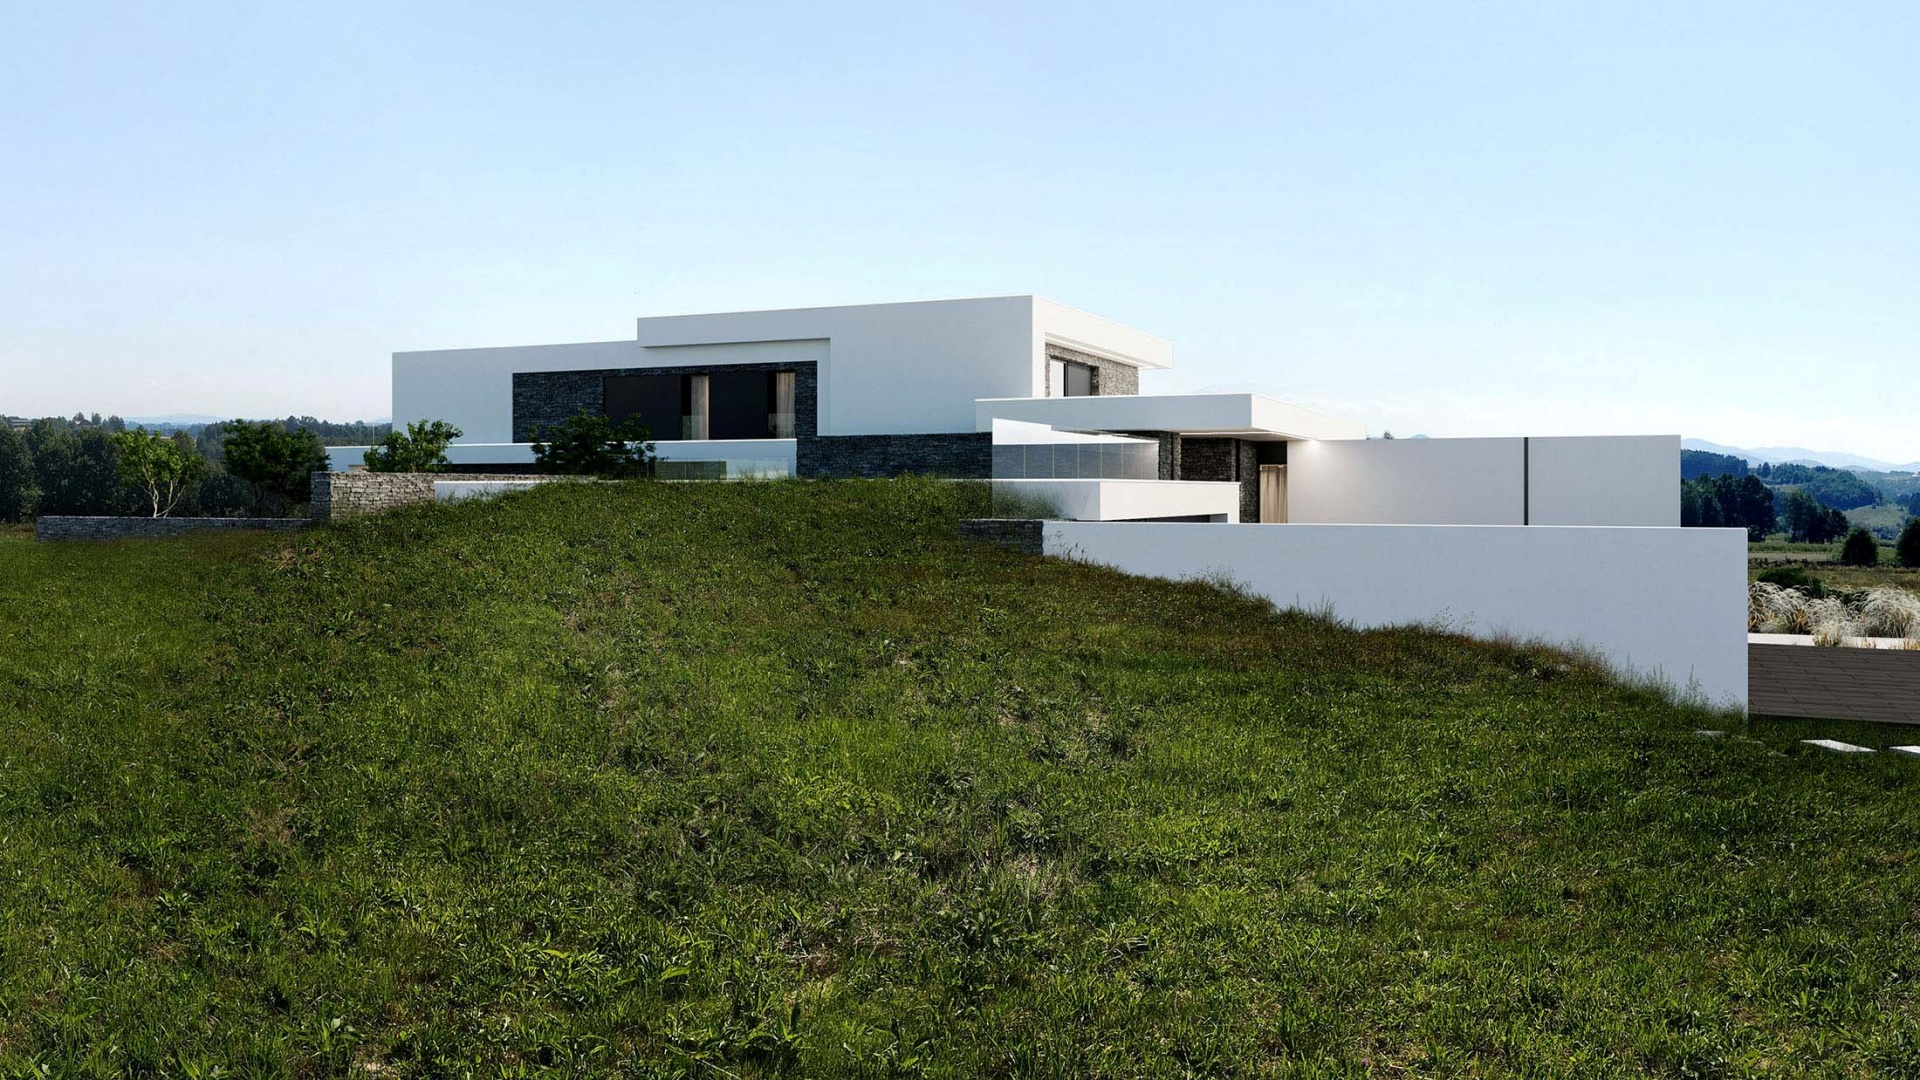 RE: GRADED HOUSE projektu architekta Marcina Tomaszewskiego REFORM Architekt